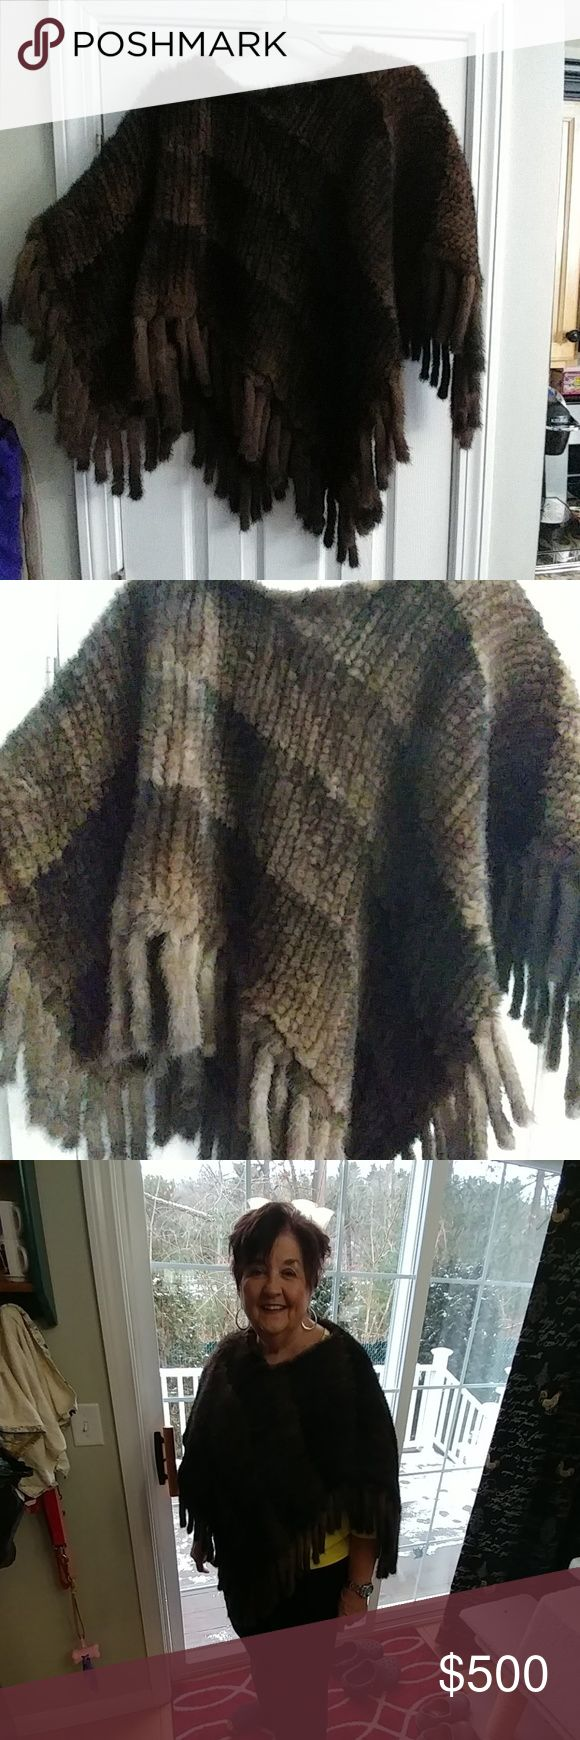 Mink poncho gorgeous offers welcomed😜 Worn 2 times like new payed over 1000 for it selling it at a great price.. All mink! Bought at Michelle's furier. Any questions please please ask one size fits all colors are rich browns. Offers are welcomed Jackets & Coats Capes